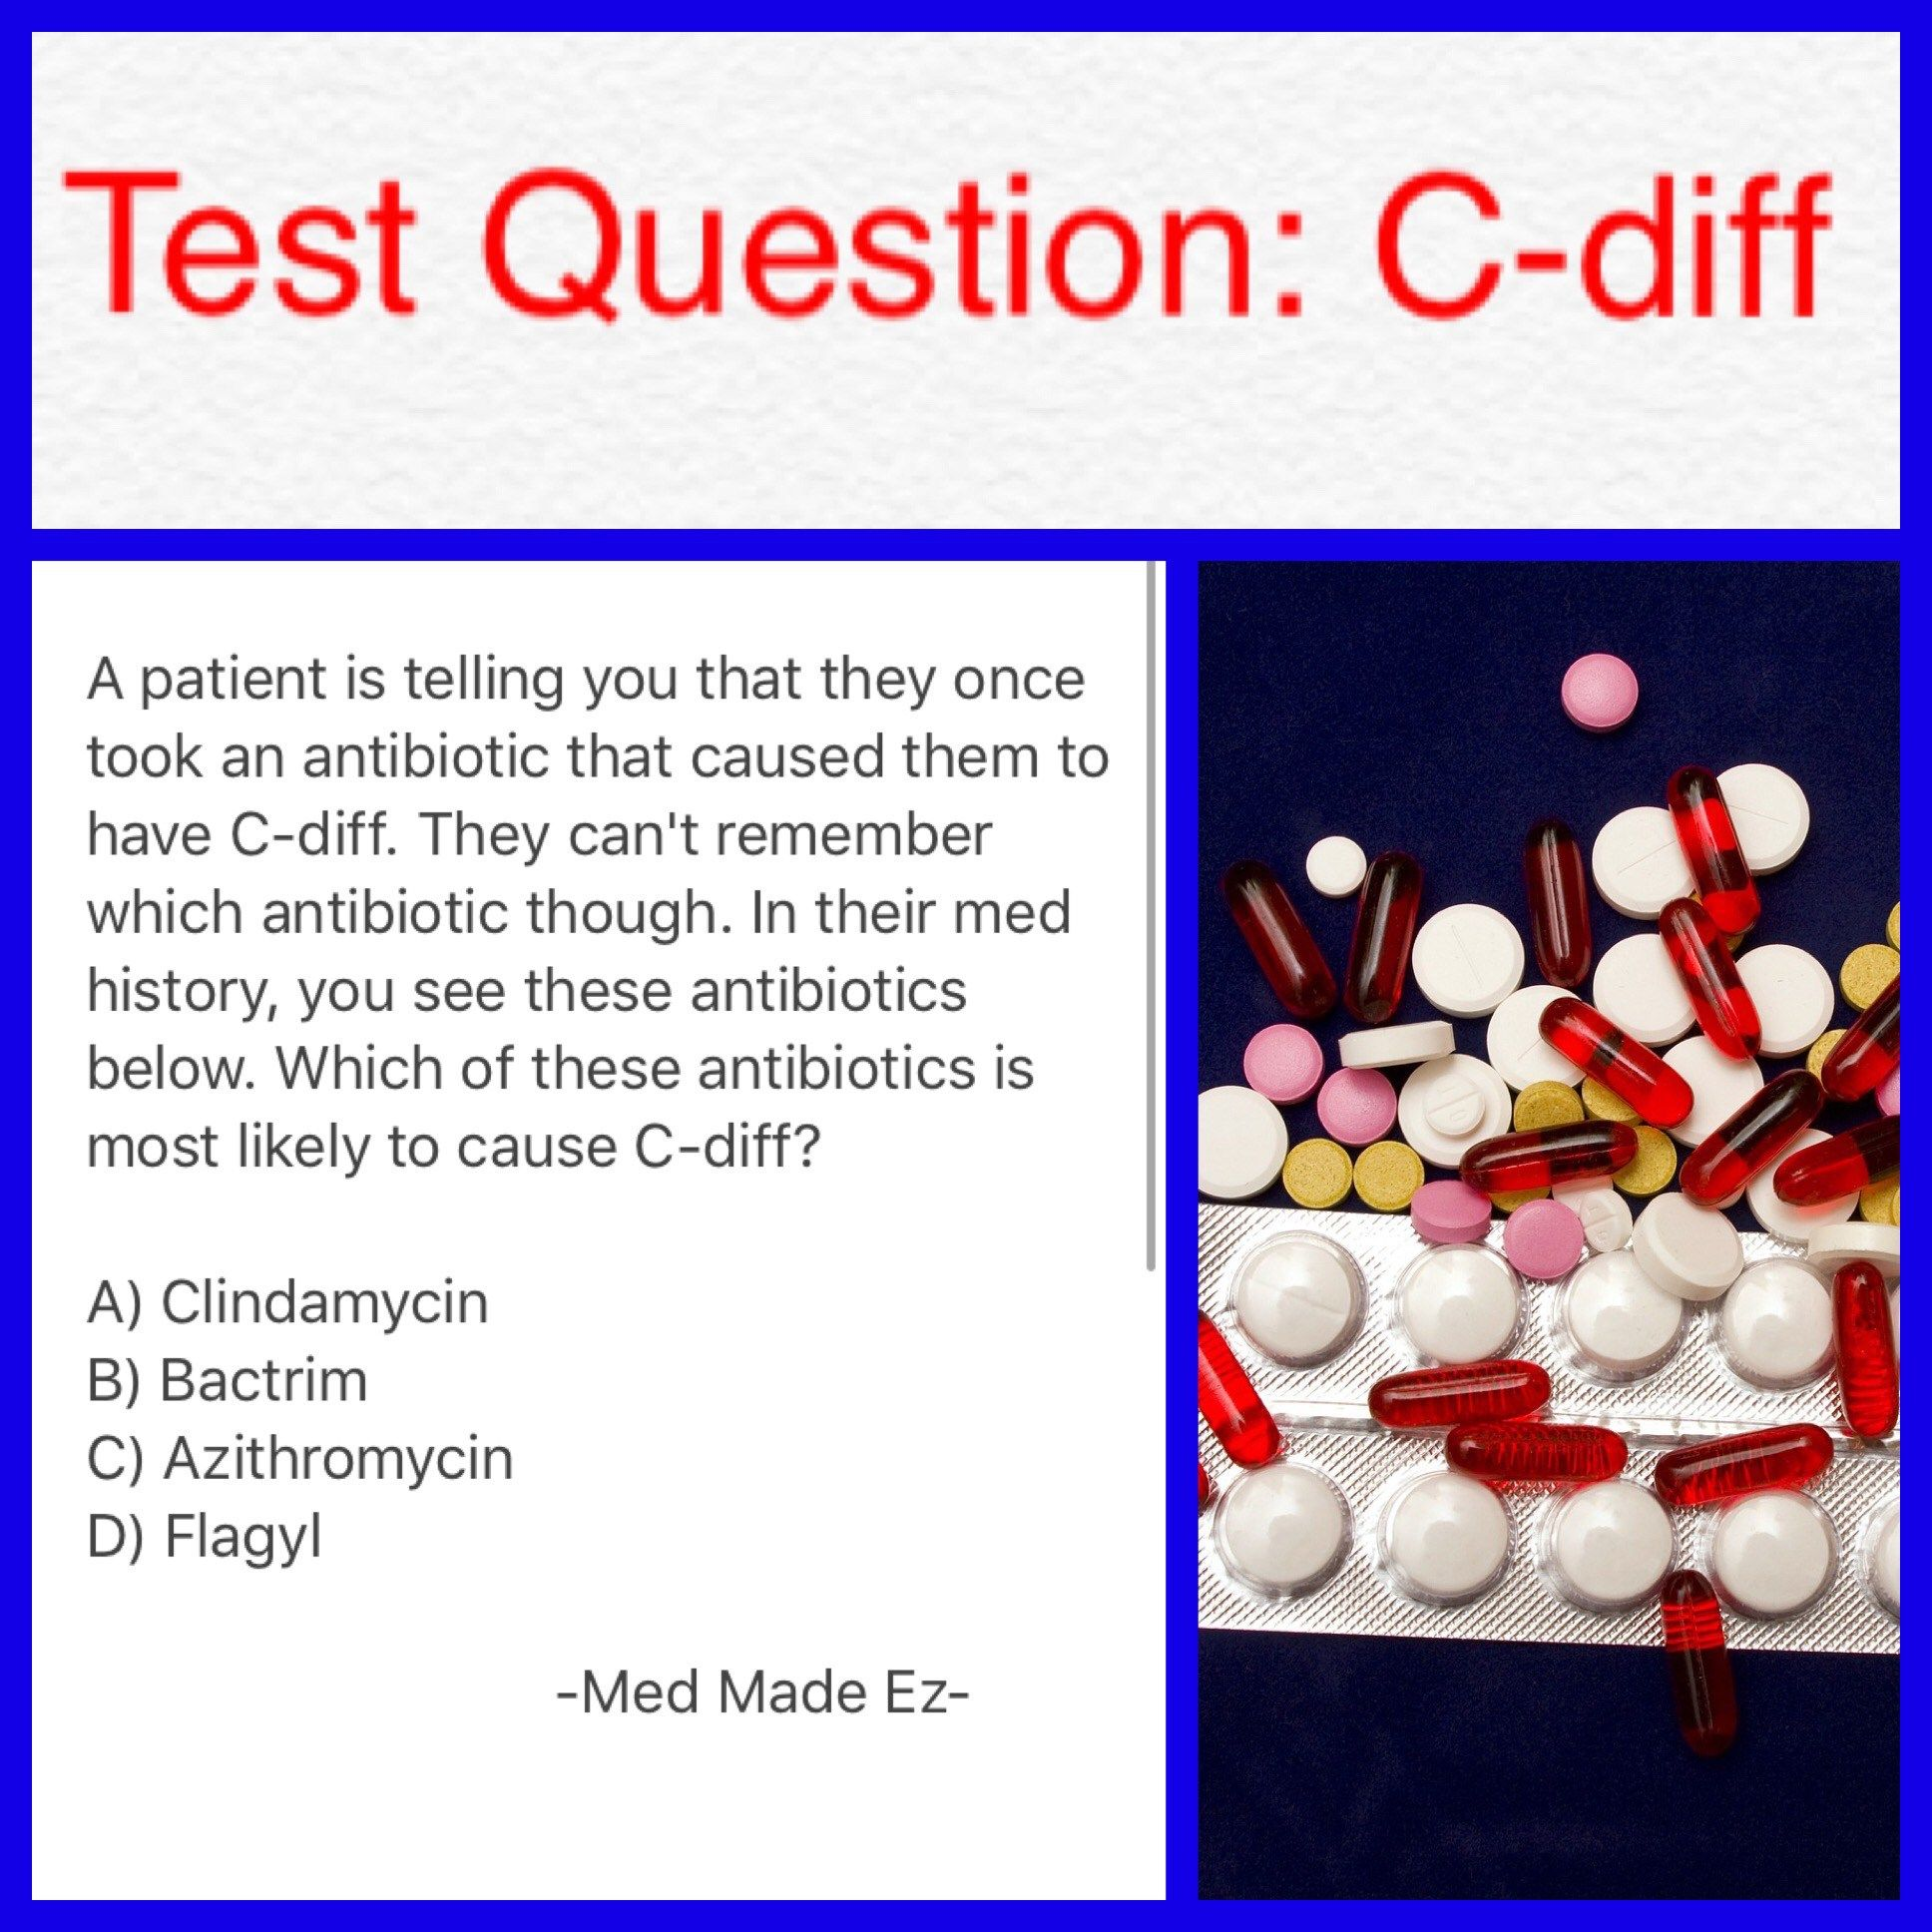 Testquestionc diff nursing pinterest nclex and medical nursing test question cdiff which antibiotic is most likely to cause c diff from the choices listed in this question xflitez Gallery